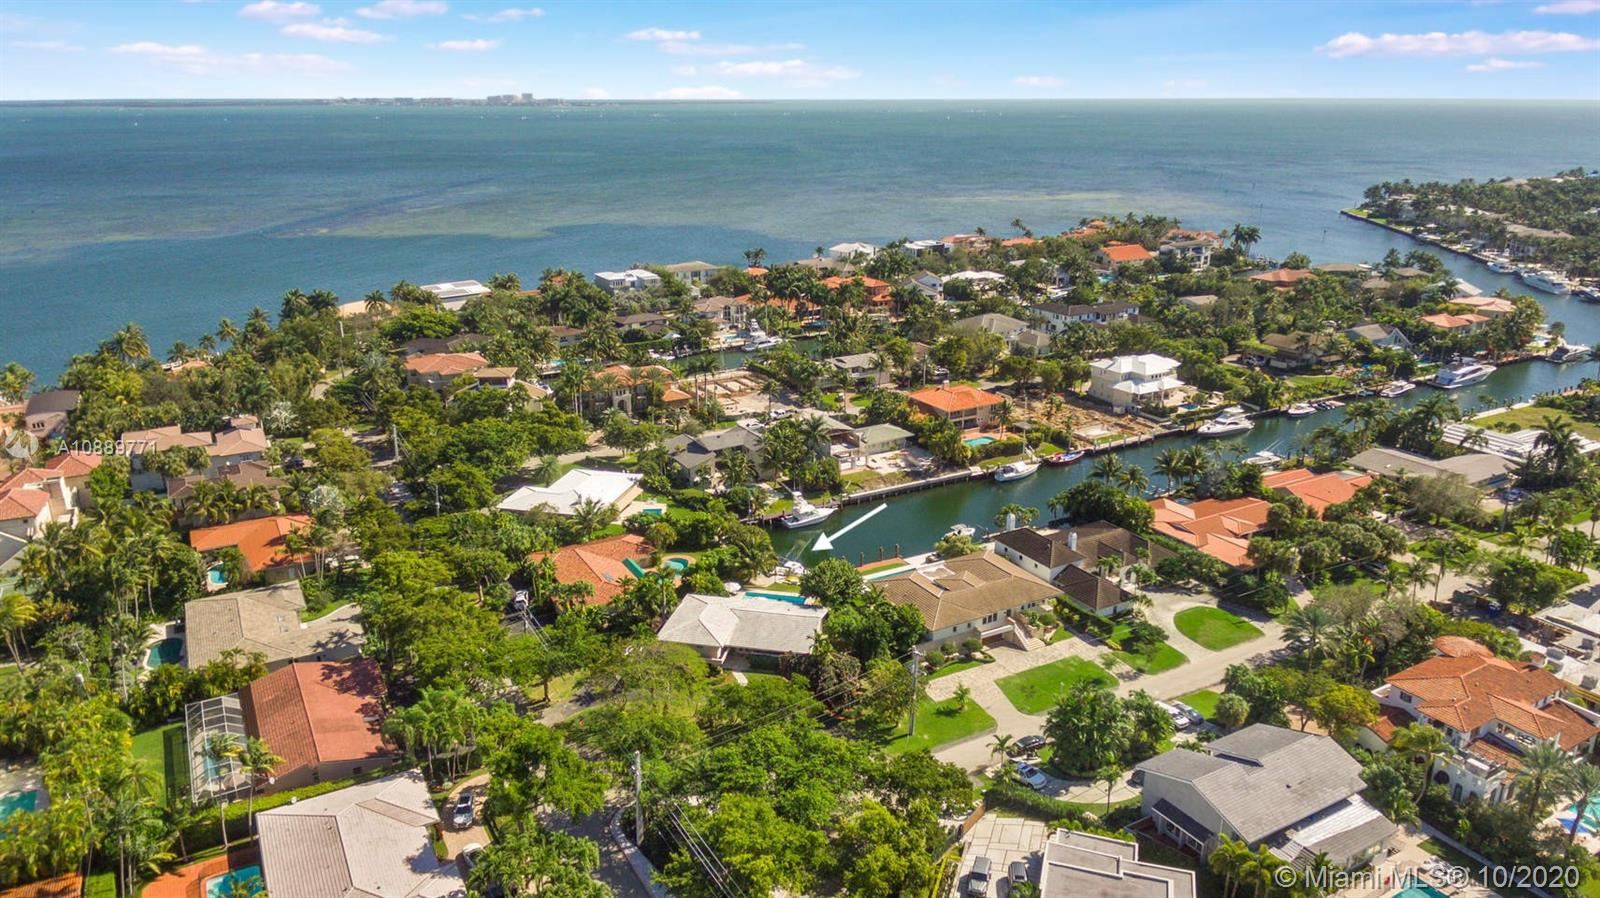 Endless possibilities await! The best value waterfront home in the coveted Sunrise Harbour gated community. This one-of-a-kind 2,568 SF 3 bed 3 bath waterfront home has no-bridge-to-bay direct ocean access. A grand entrance with circular driveway & stunning curb appeal greet you at the elevated split level Coral Gables residence. Partially renovated with updated kitchen, Impact windows & new roof. Entry level features open kitchen, dining & family rooms connected to an expansive patio overlooking the pool & private 30ft dock. Upstairs holds the bedrooms & main suite with balcony overlooking the water. Additional Downstairs level has 2 car garage, full bath, & den with private patio. Ready for move-in or renovate/rebuild on 15,700SF lot. Centrally located near top schools, parks & more.